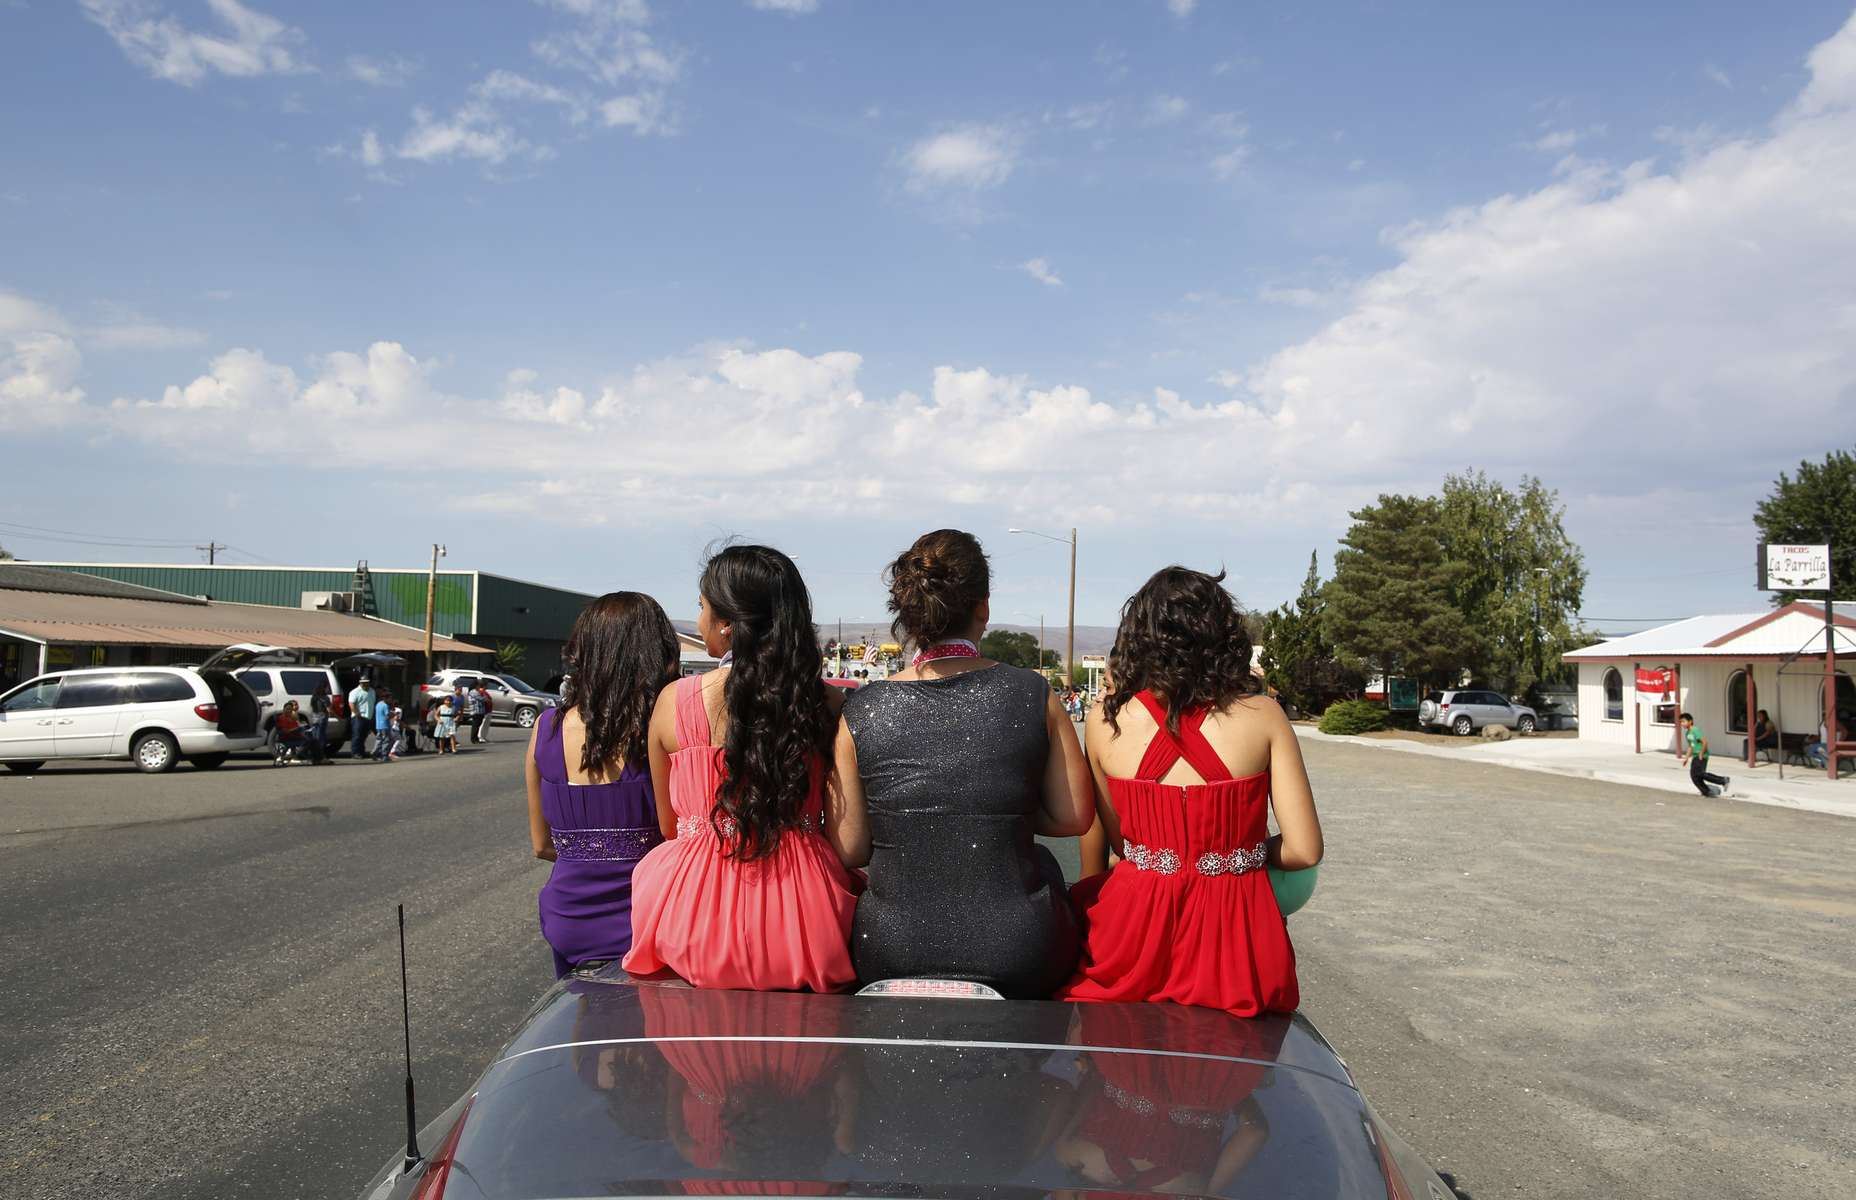 Members of the Distinguished Young Women of Mattawa ride in the Mattawa Community Days parade in Mattawa, Washington August 24, 2013.With few solutions on the horizon in Congress, towns such as Mattawa are left to chart their own futures, amid divisions between workers and bosses, foreigners and Americans.